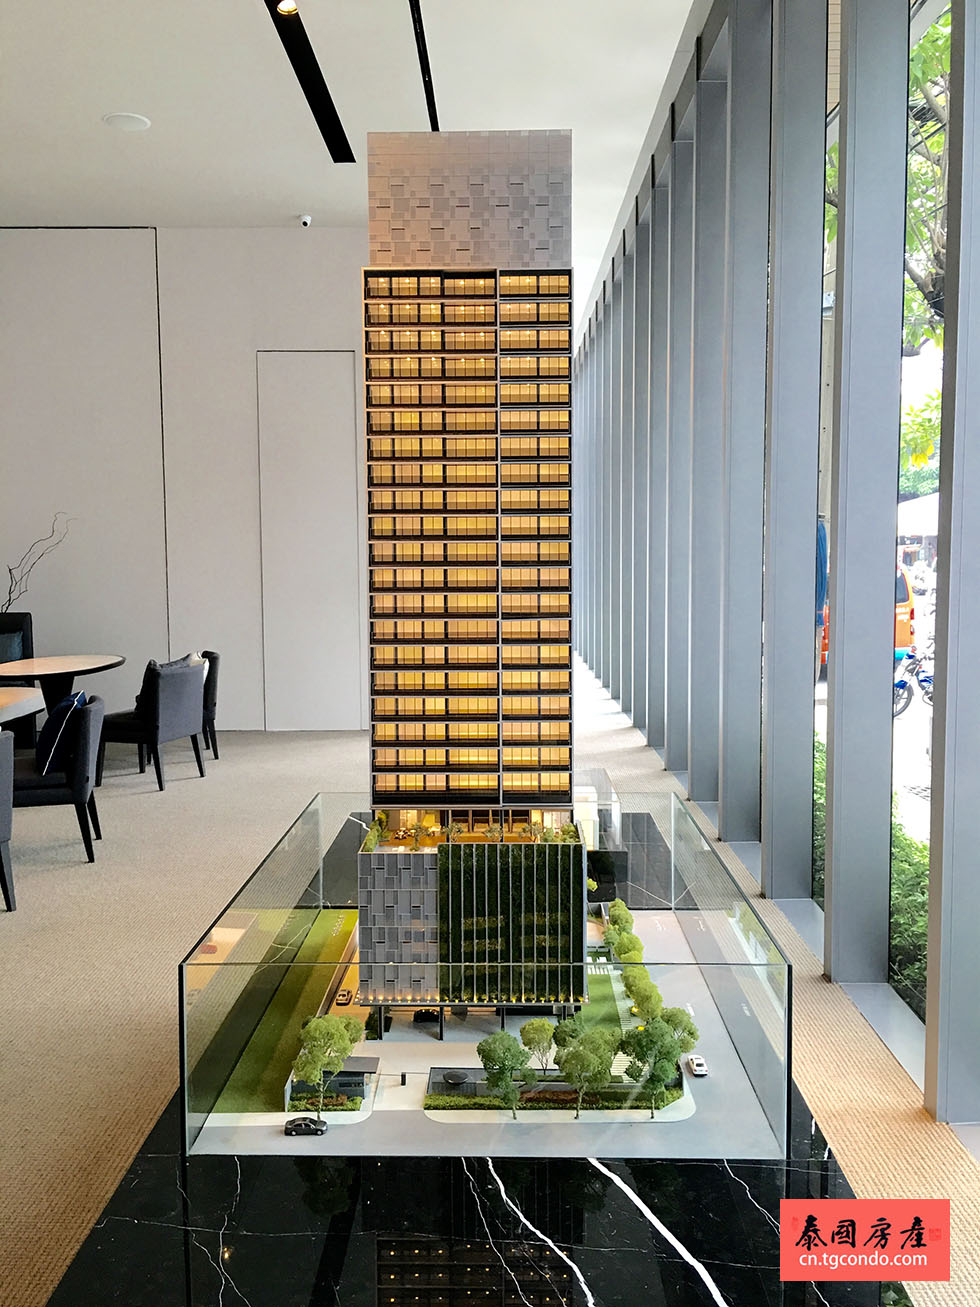 tela-thonglor-residences-2.jpg